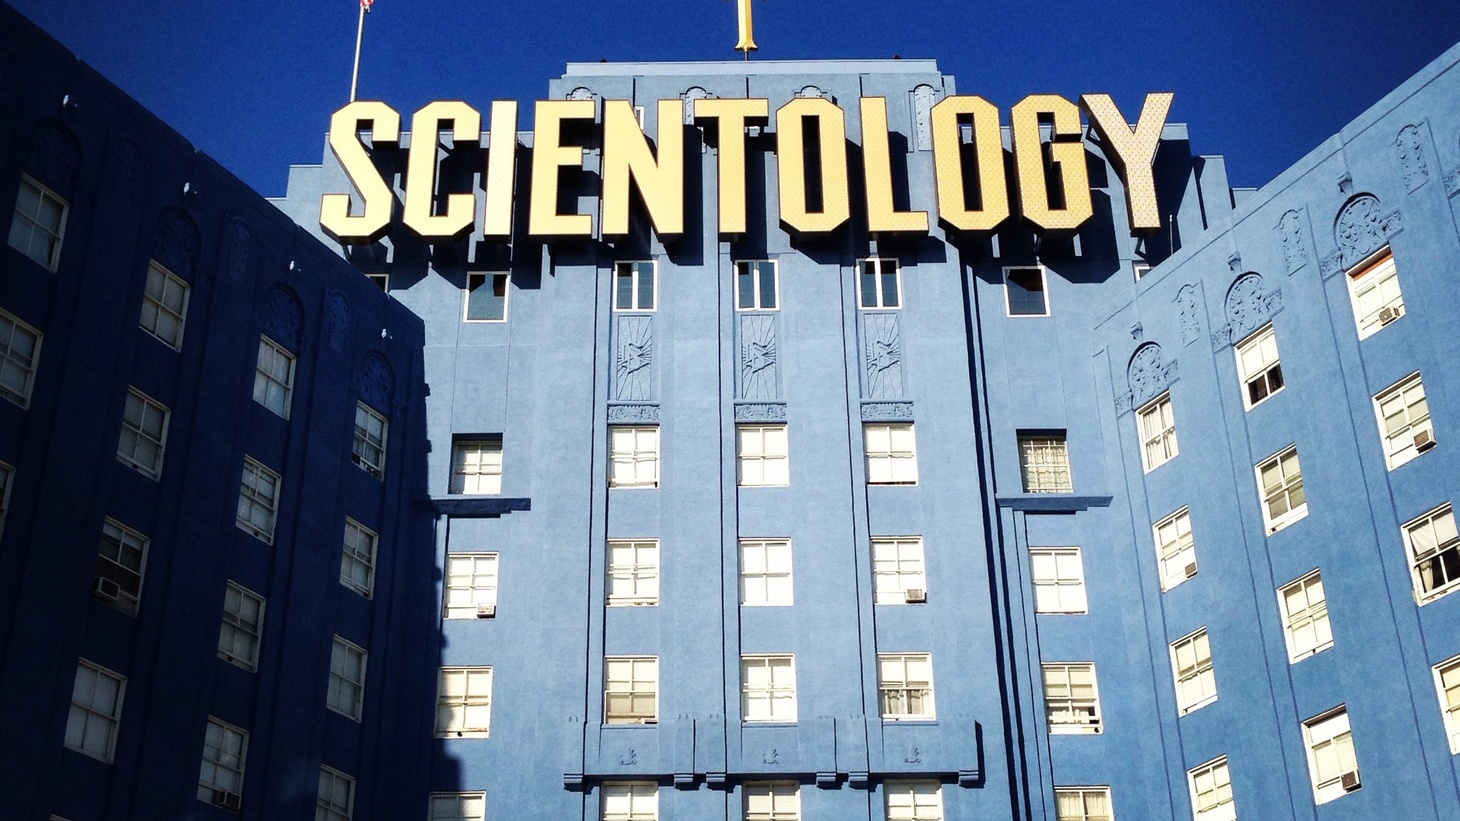 """HBO is airing a two-hour documentary full of horror stories by former members of Scientology. Celebrity members Tom Cruise and John Travolta are depicted as partners in an abusive cult worth billions, but declared a tax-exempt religion by the IRS. Scientology calls it """"bigoted propaganda"""" from """"admitted liars."""""""